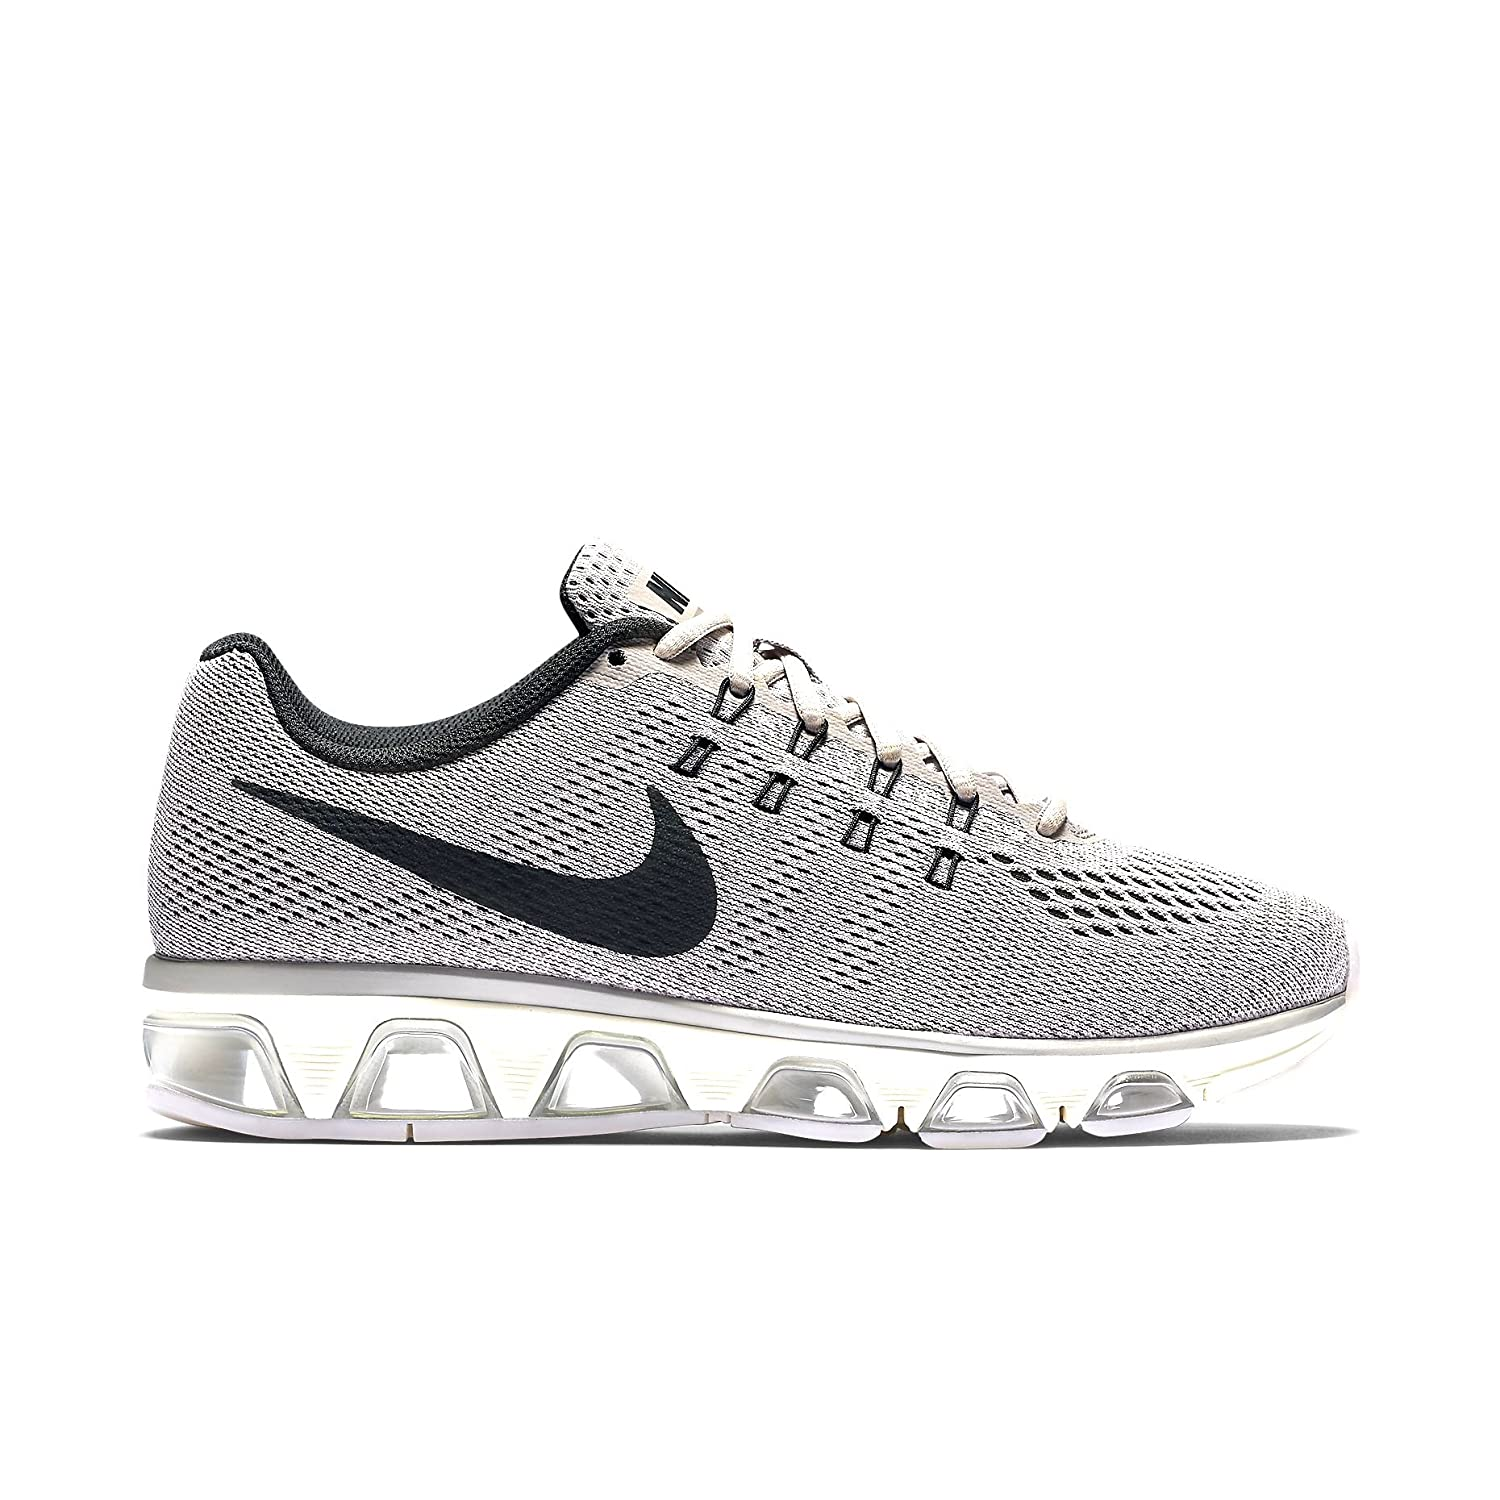 new styles c74ab bfca9 Amazon.com: Nike Womens Air Max Tailwind 8 Running Shoes ...